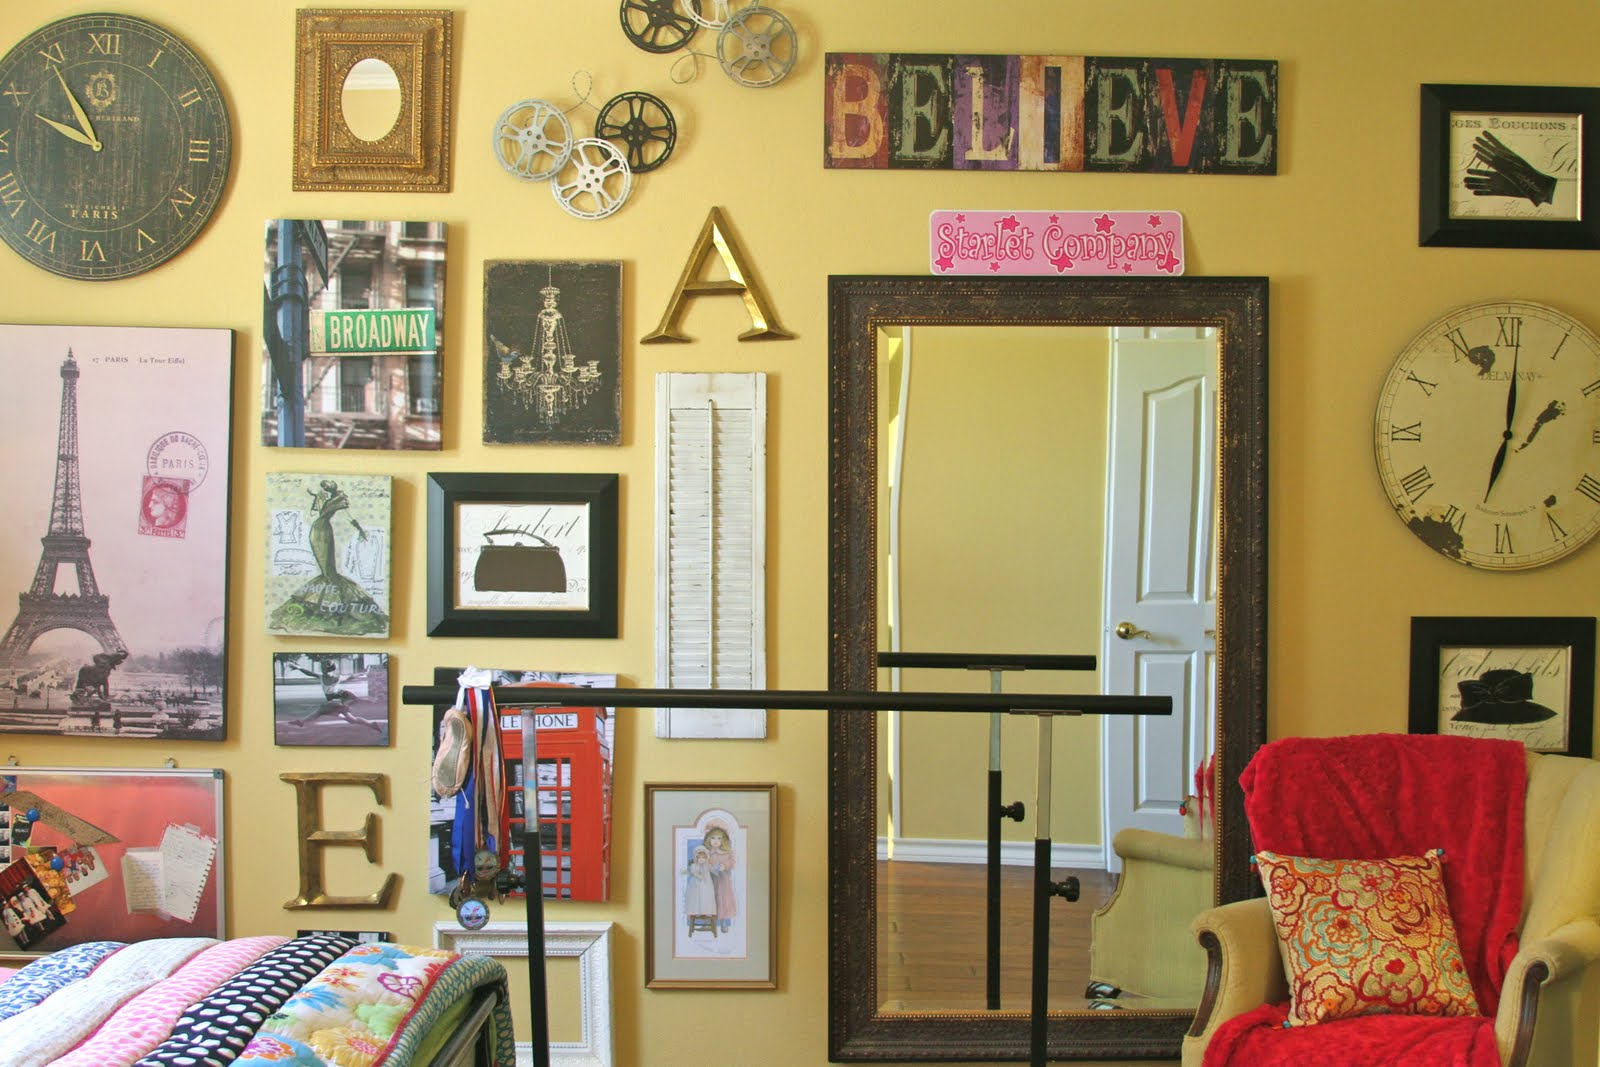 Luxury Decorating With Letters On Walls Embellishment - The Wall Art ...